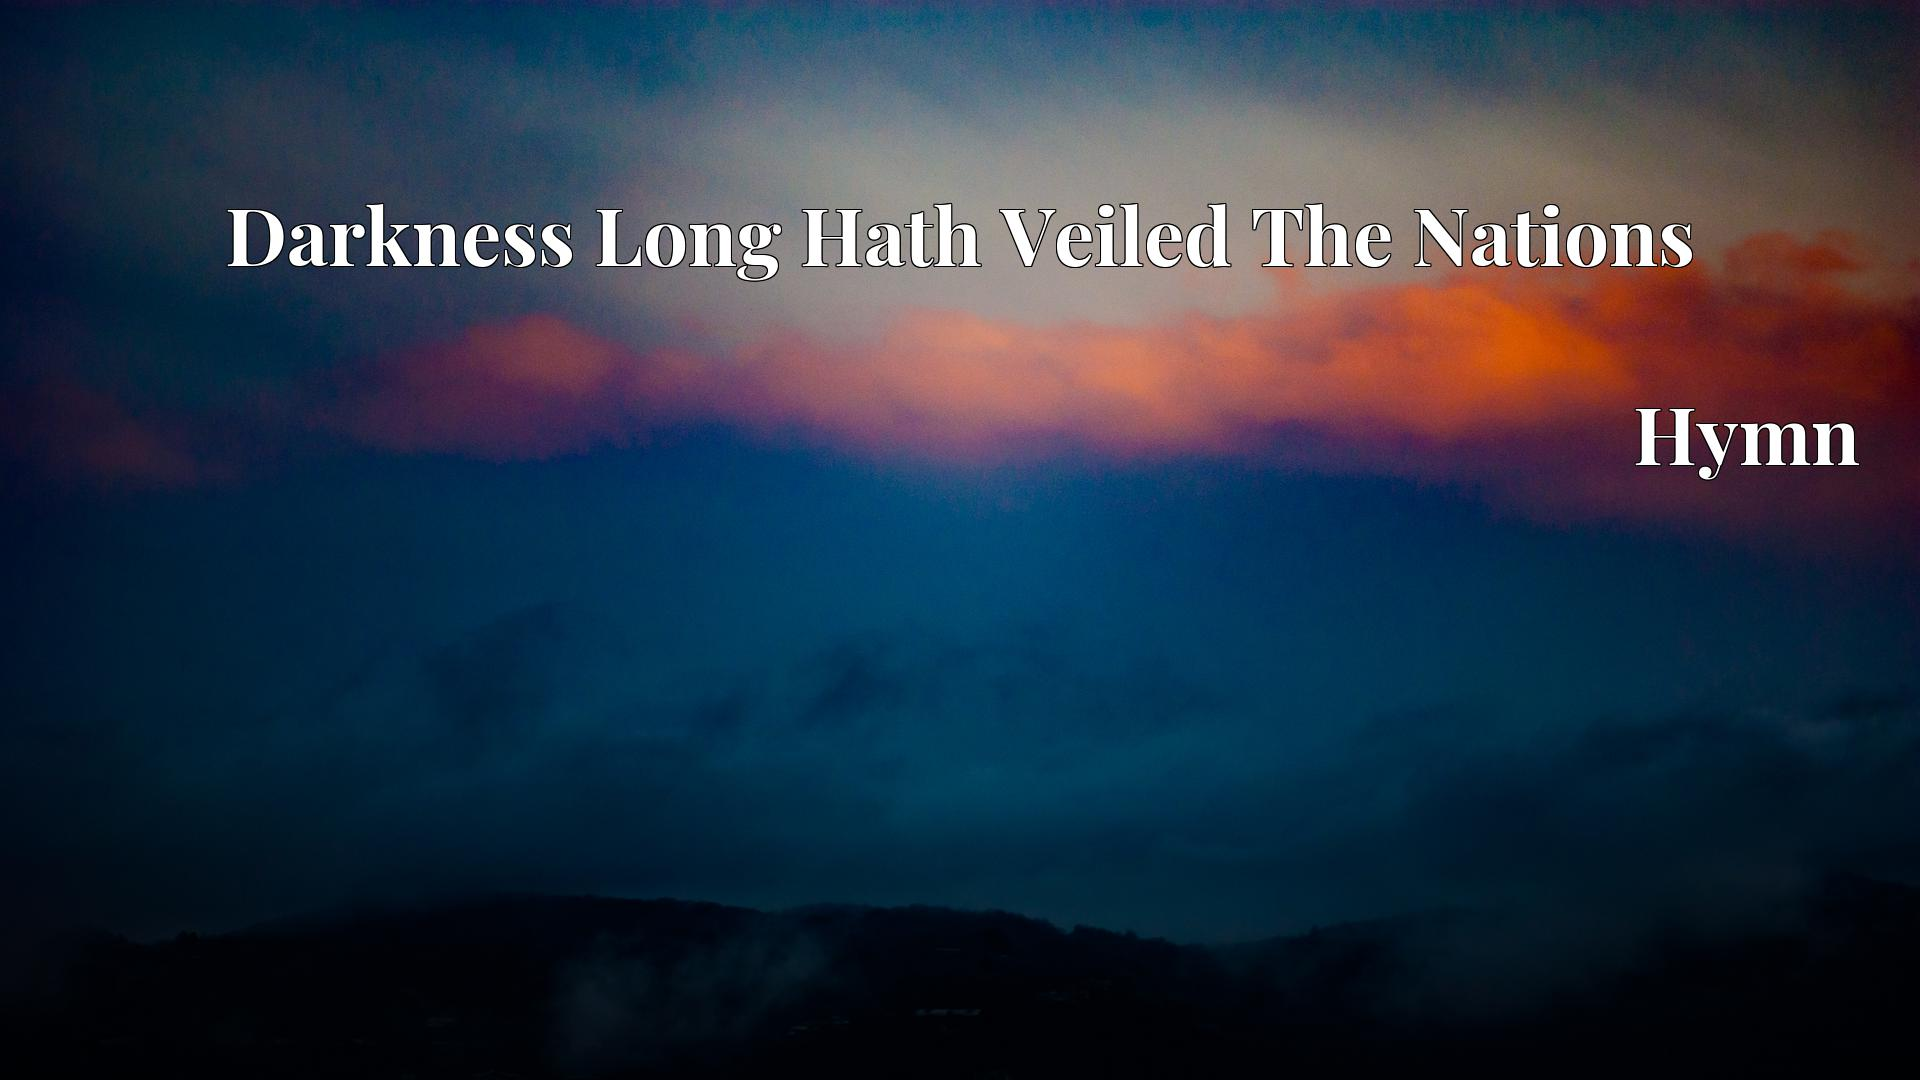 Darkness Long Hath Veiled The Nations - Hymn